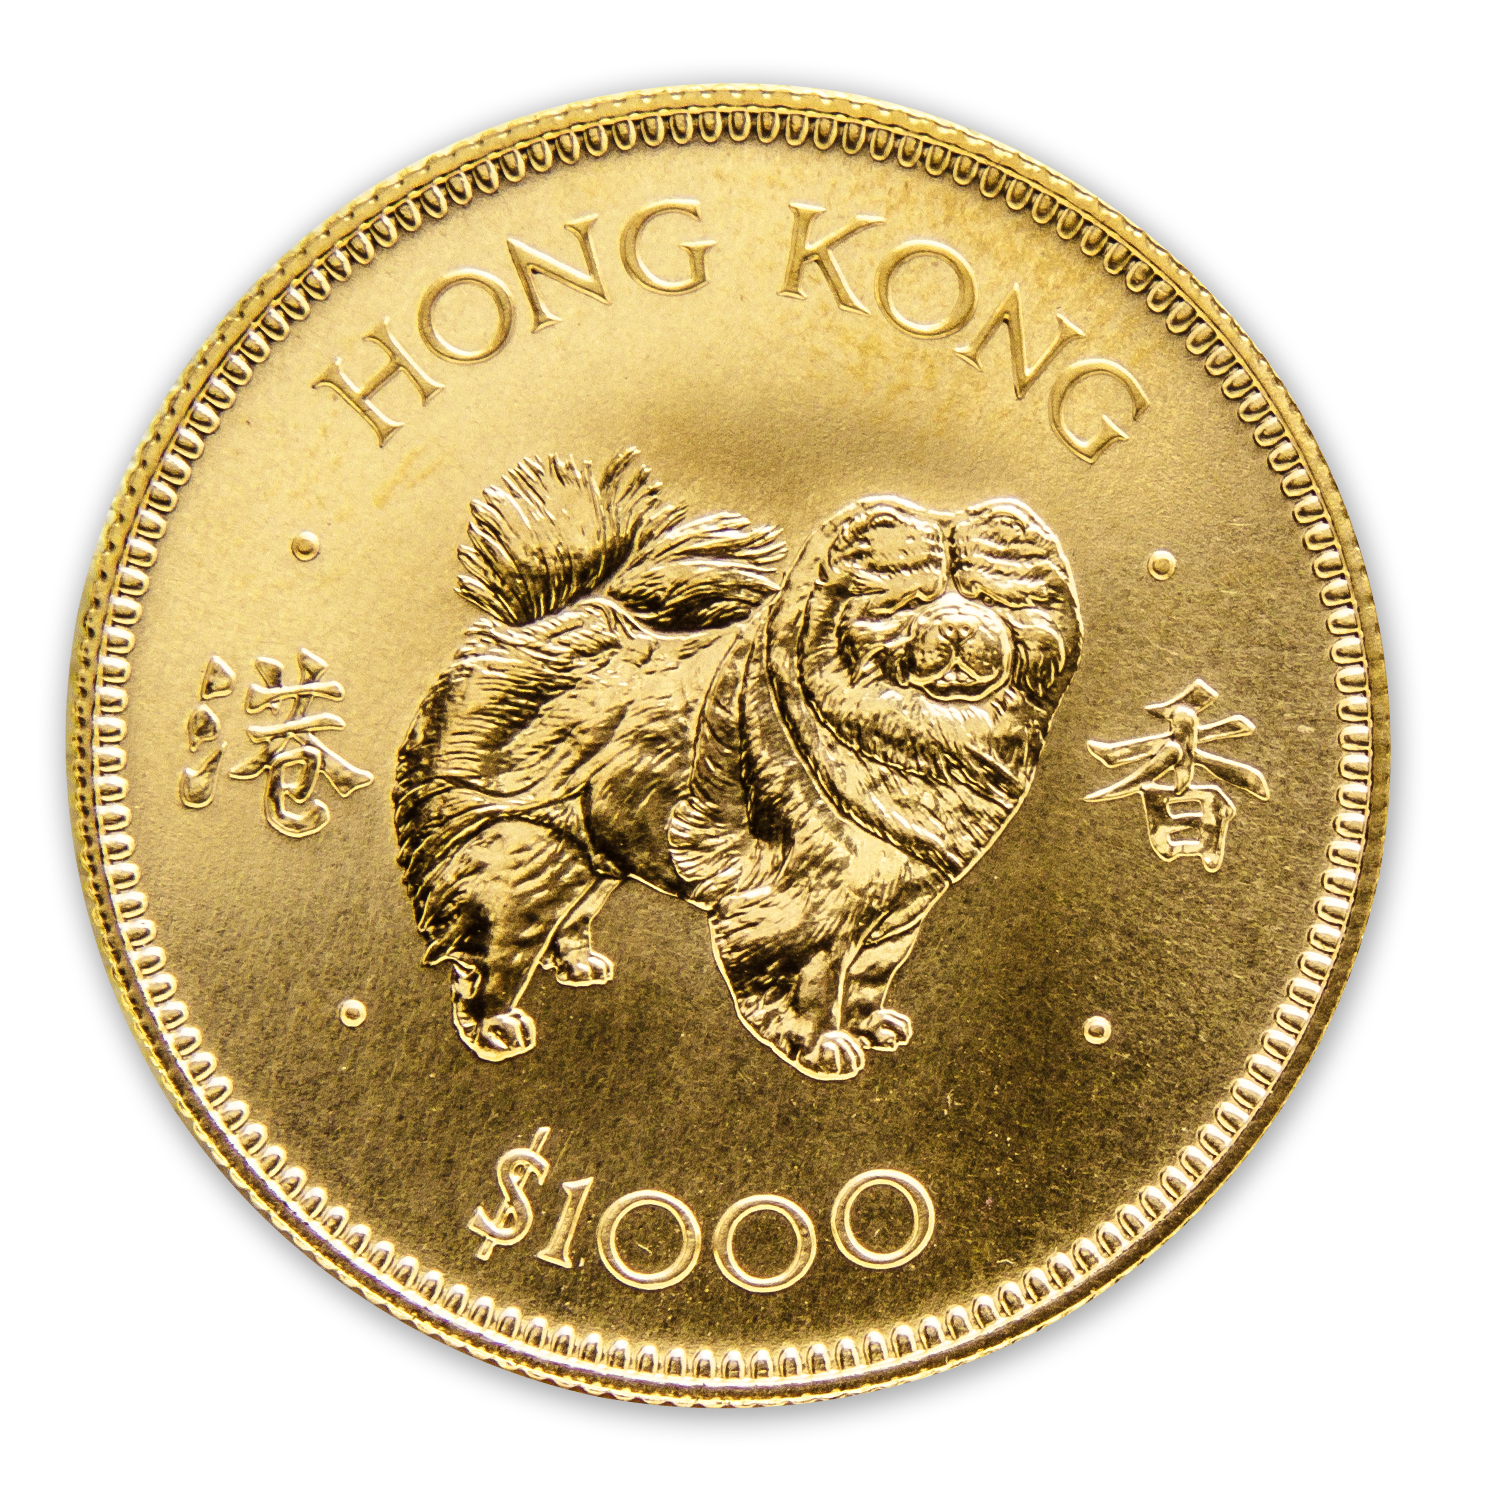 1982 Hong Kong Gold $1000 Year of the Dog BU